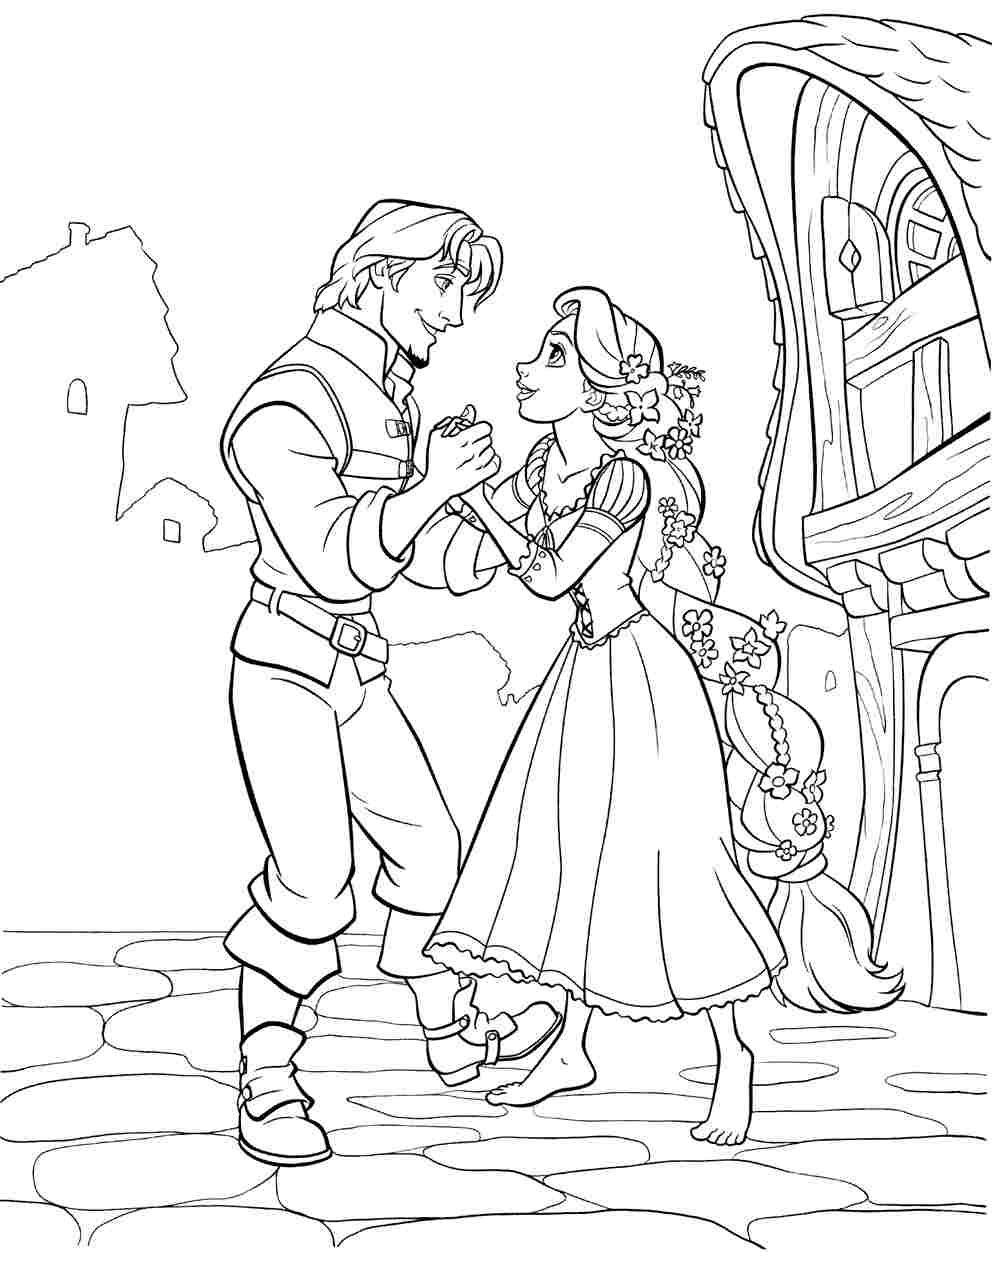 Disney Princess Tangled Rapunzel Coloring Sheets Free Printable For